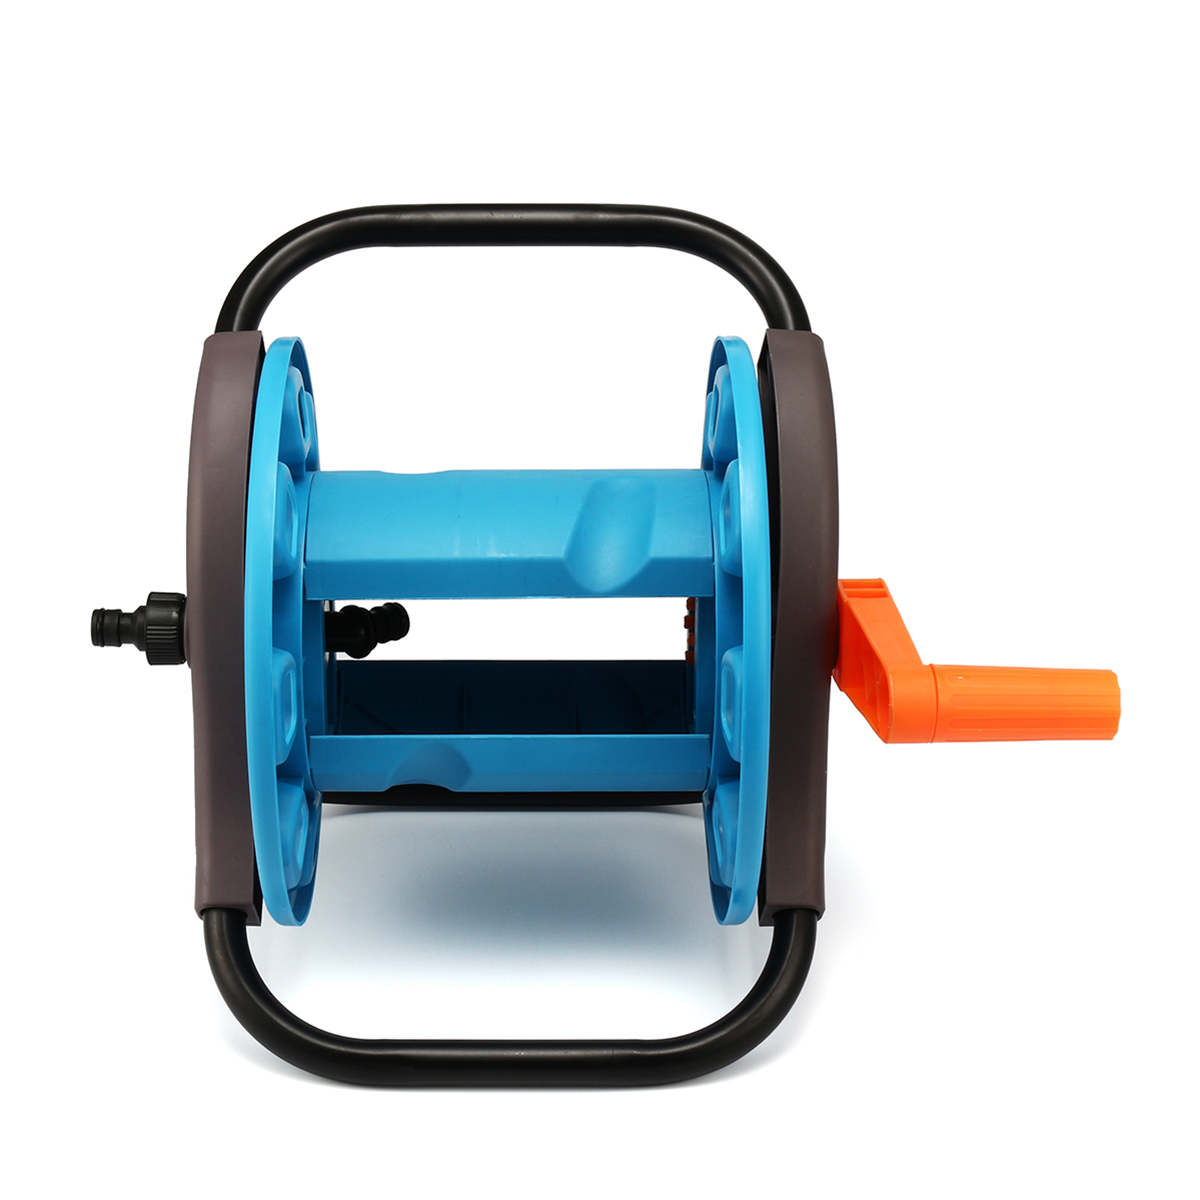 Portable Hose Reel Watering Hose Pipe Clip Reel Lawn Waterpipe Storage Holder